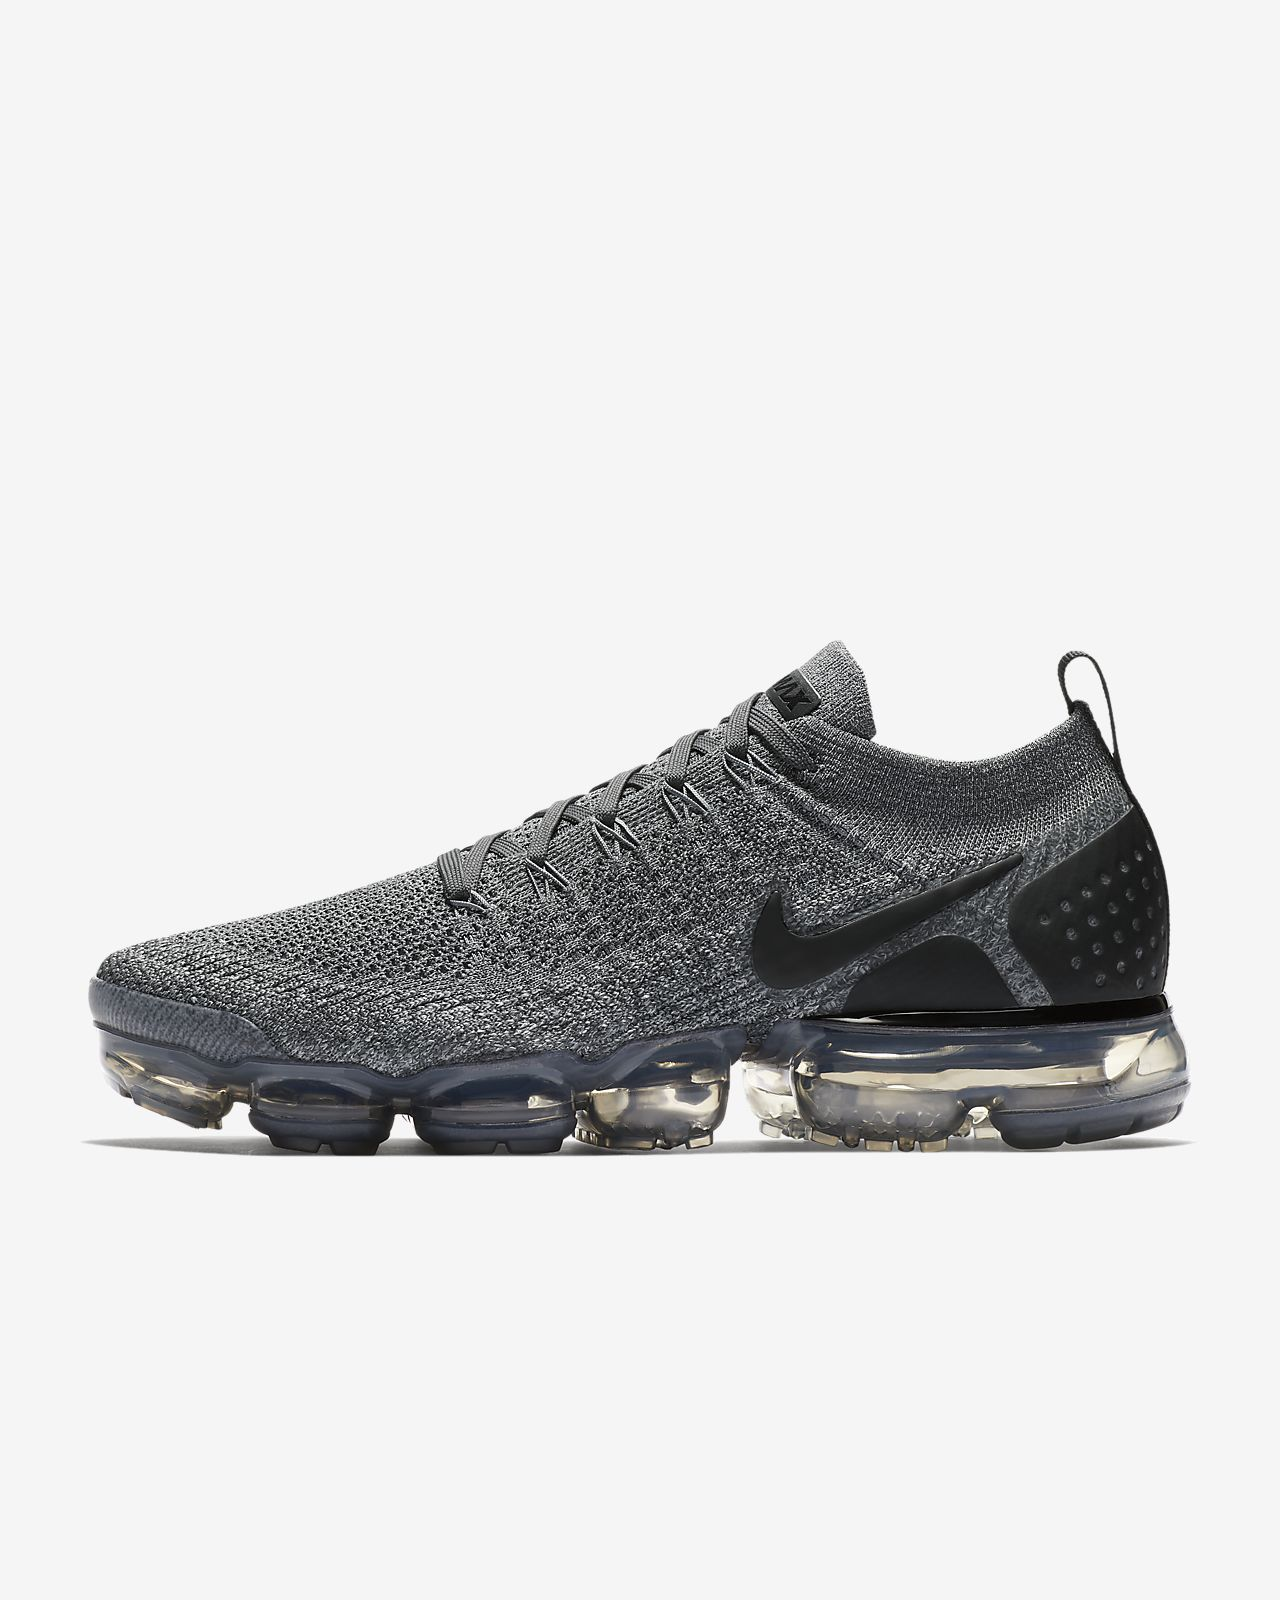 the latest 7dd4c fe30d Mens Nike Air VaporMax Flyknit 2 Running Shoe Dark Grey Wolf Grey Black White  Style  942842-002